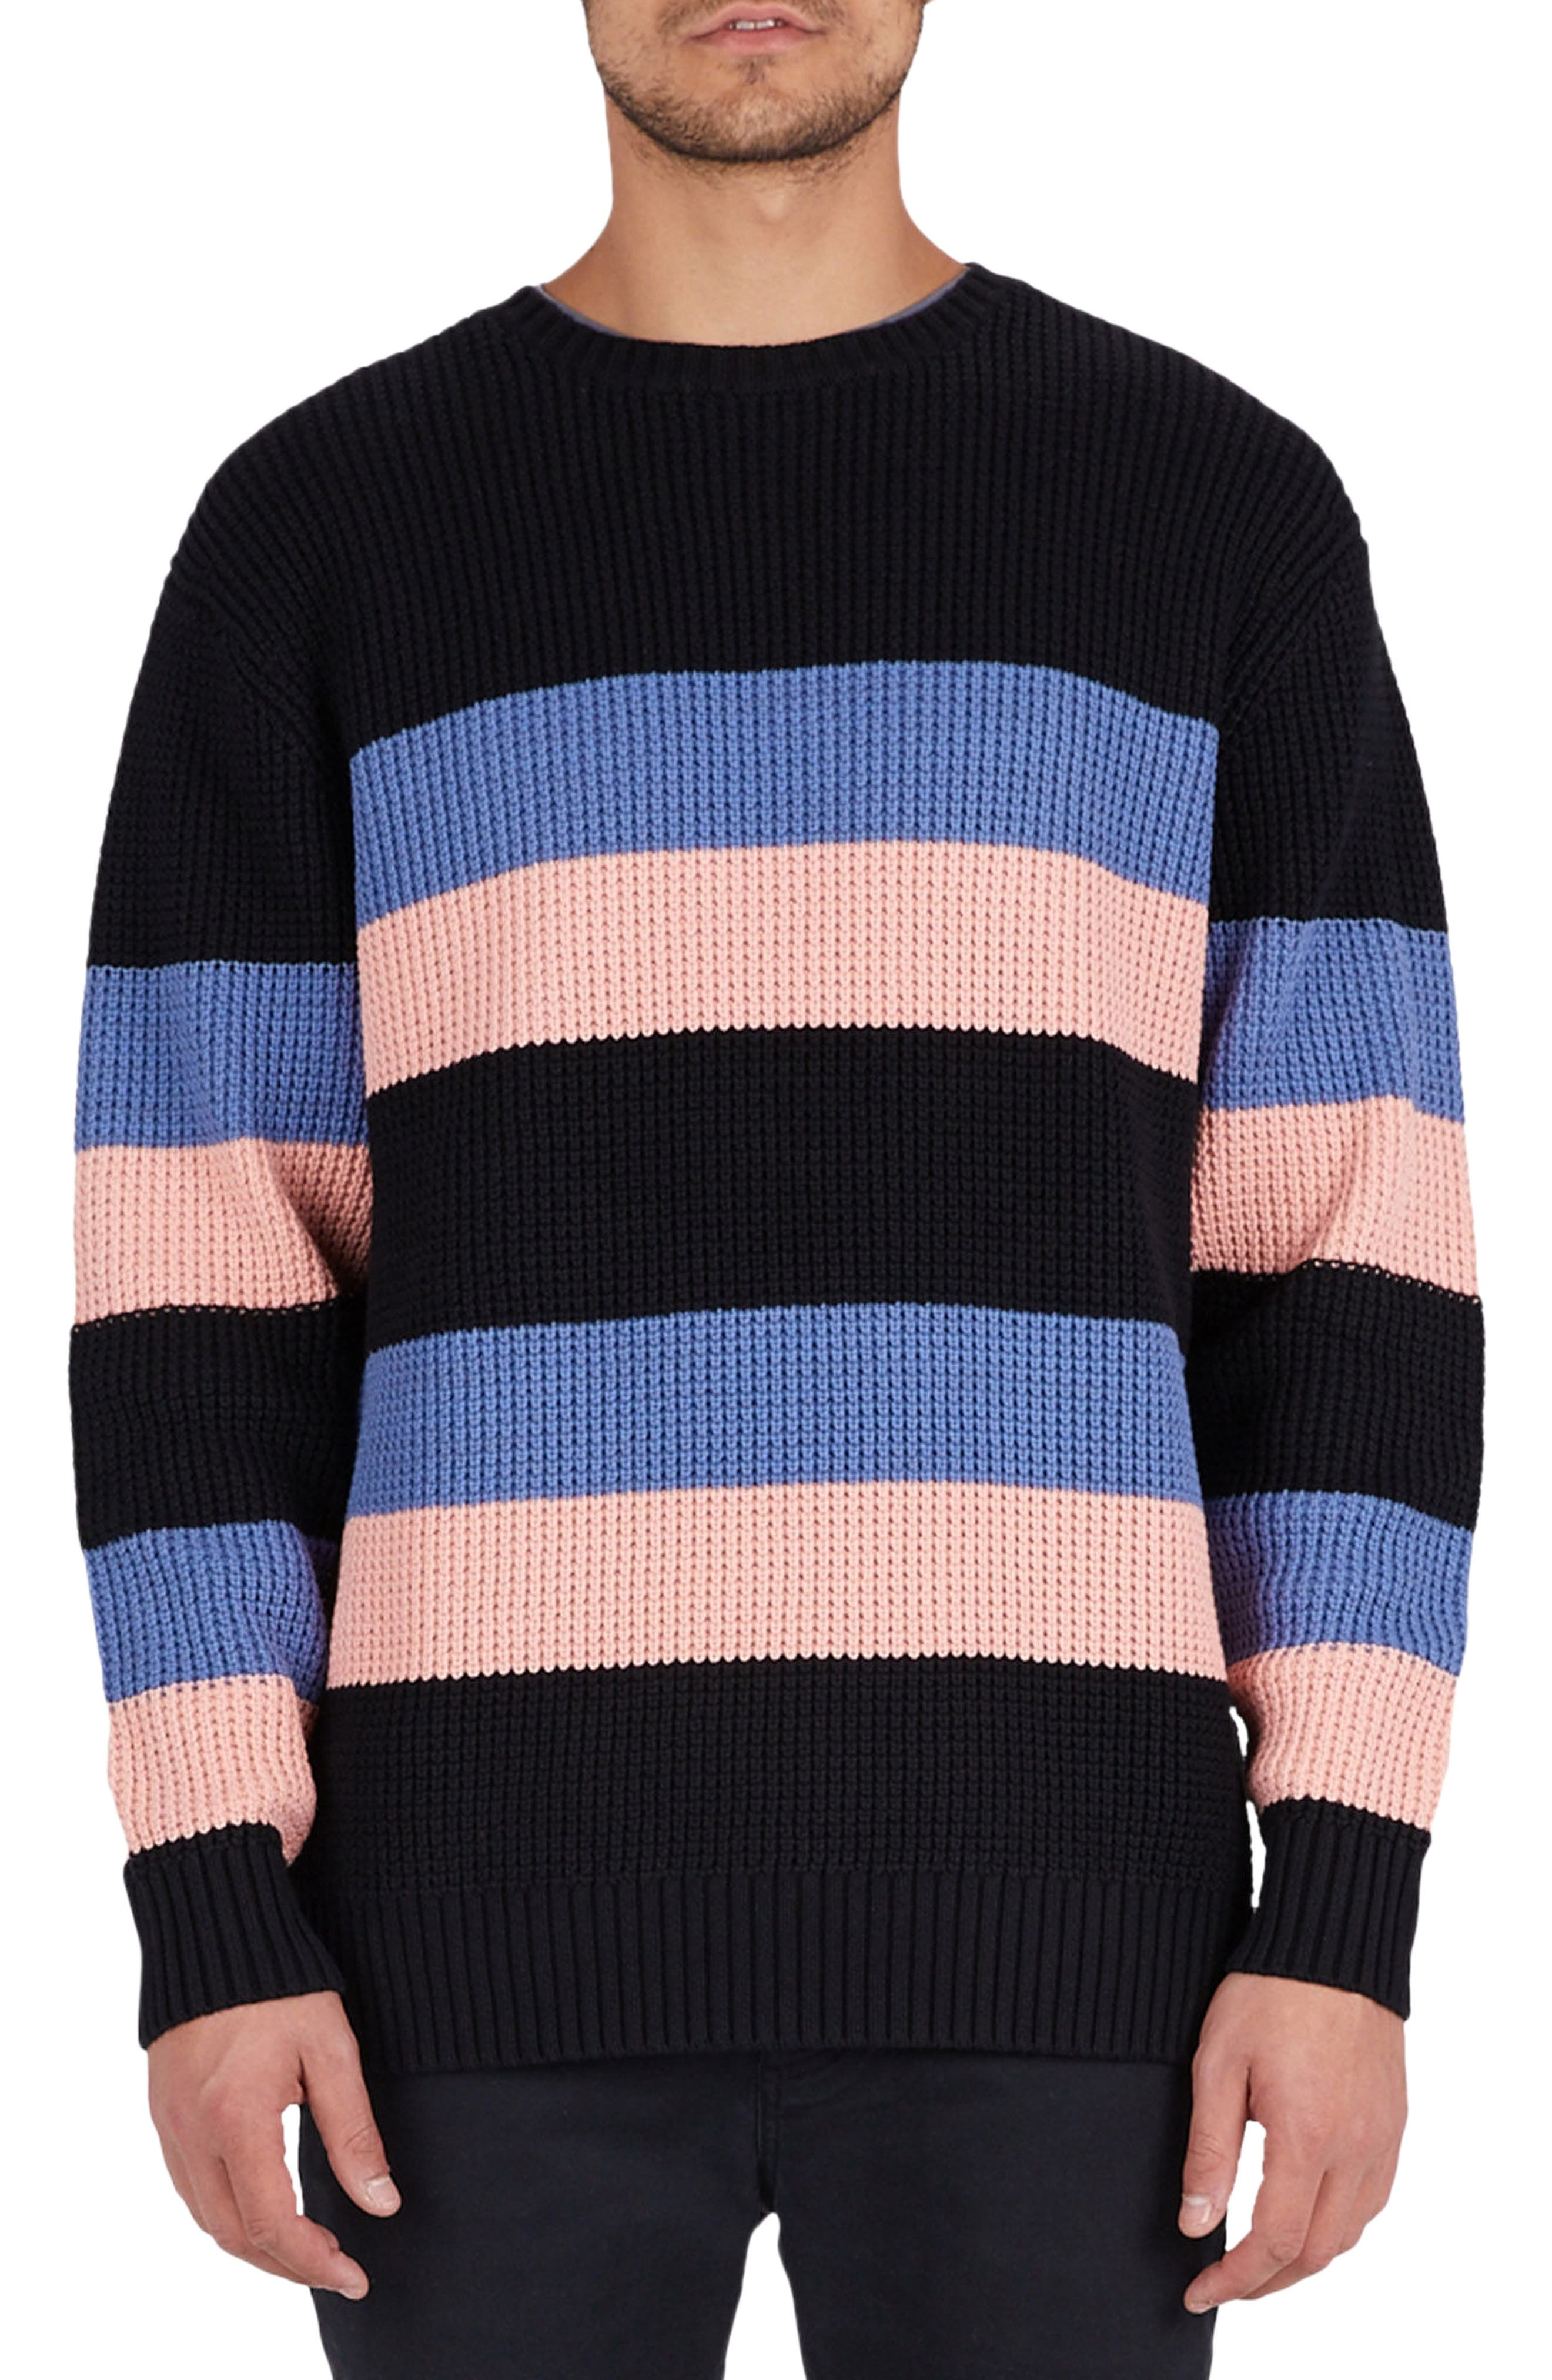 Barney Cools Rugby Stripe Sweater